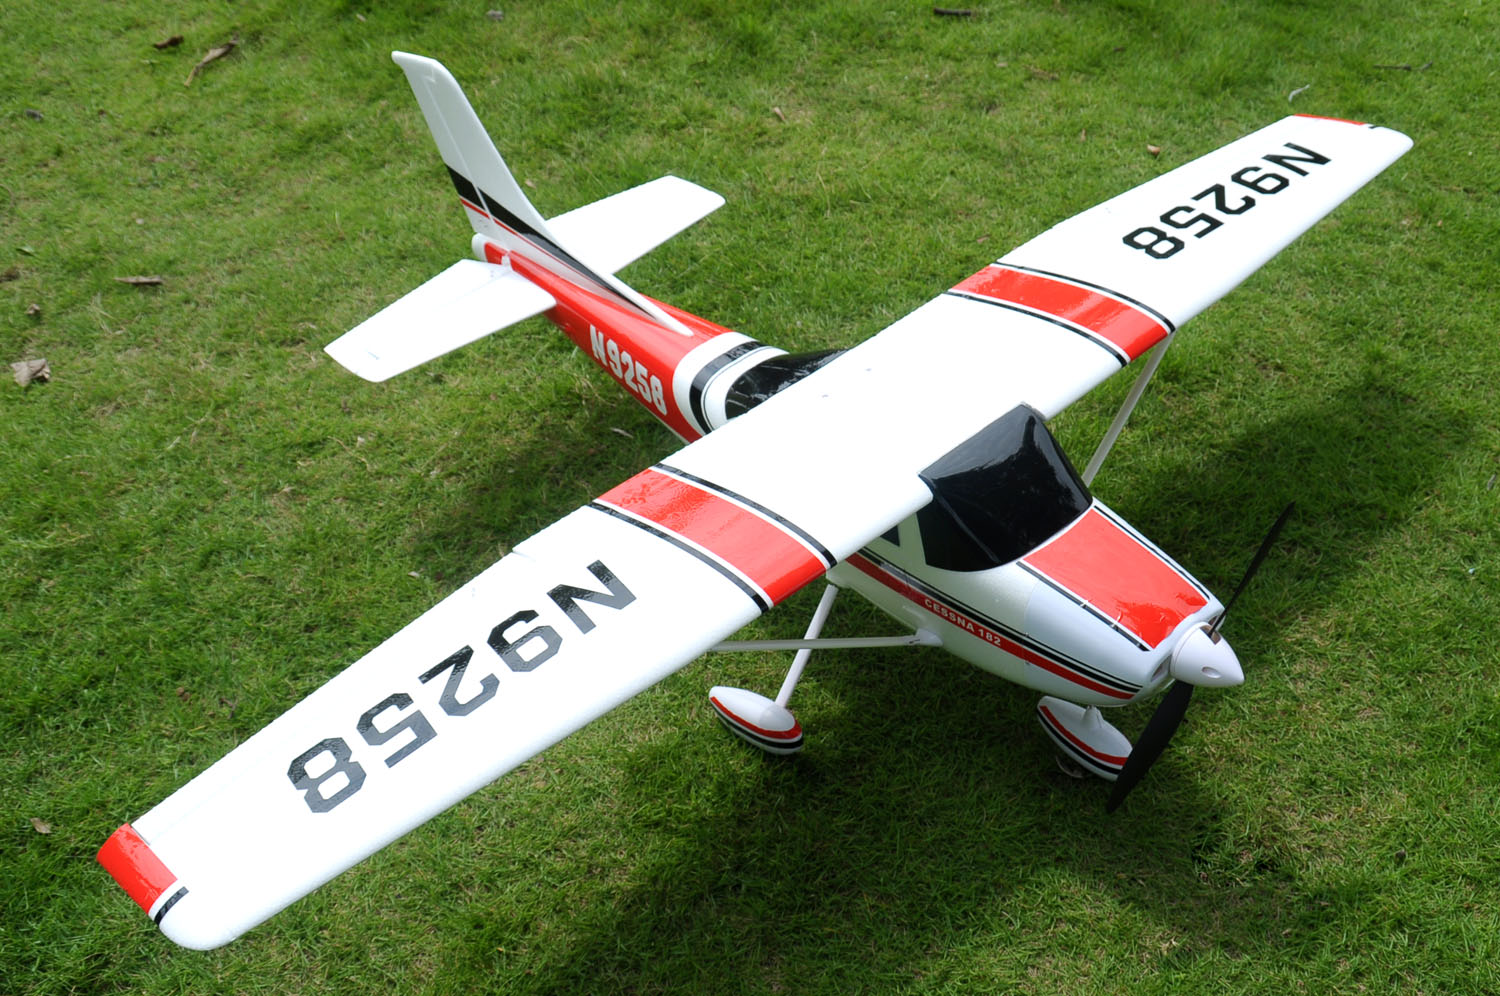 Mile High RC - RC Airplanes, RC Accessories,PNP, Parflyer, Lipo